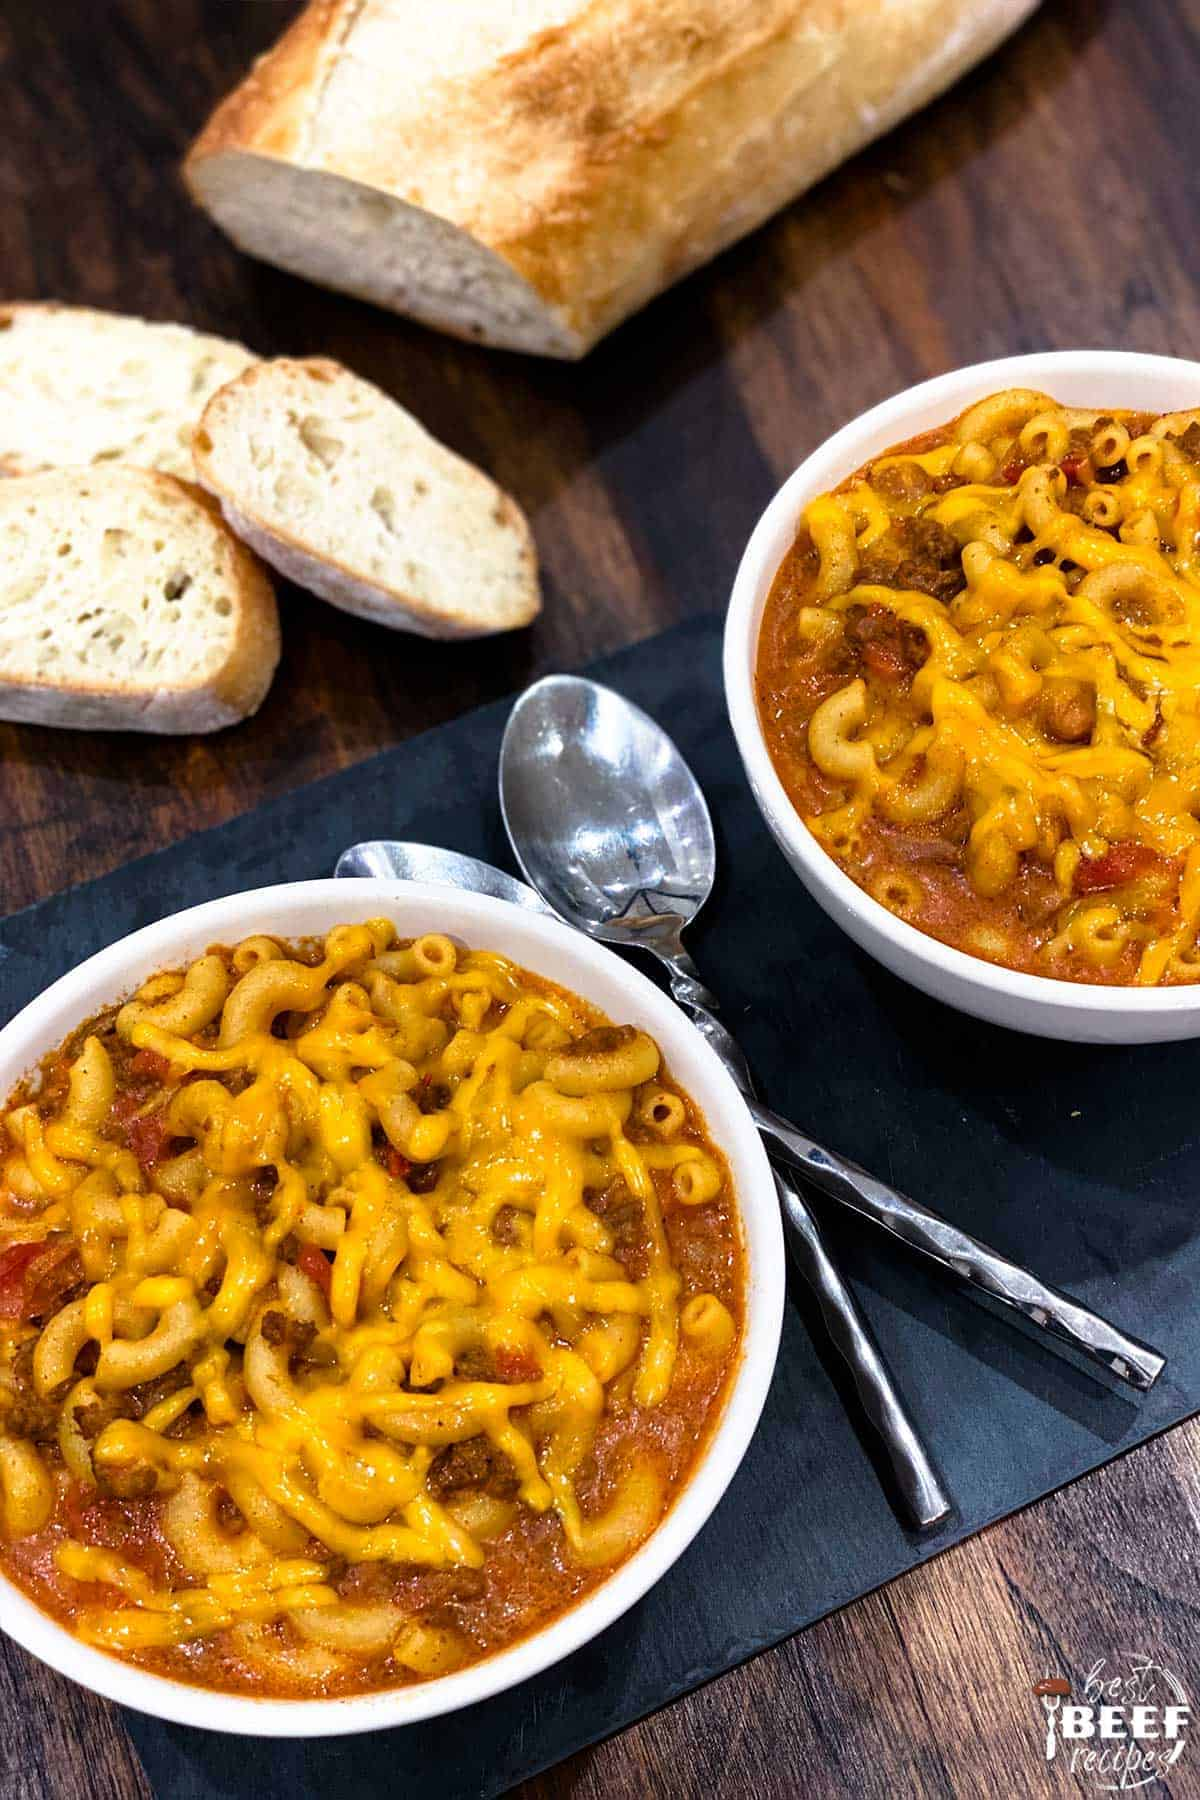 Instant pot chili mac in two white bowls with two spoons and slices of bread